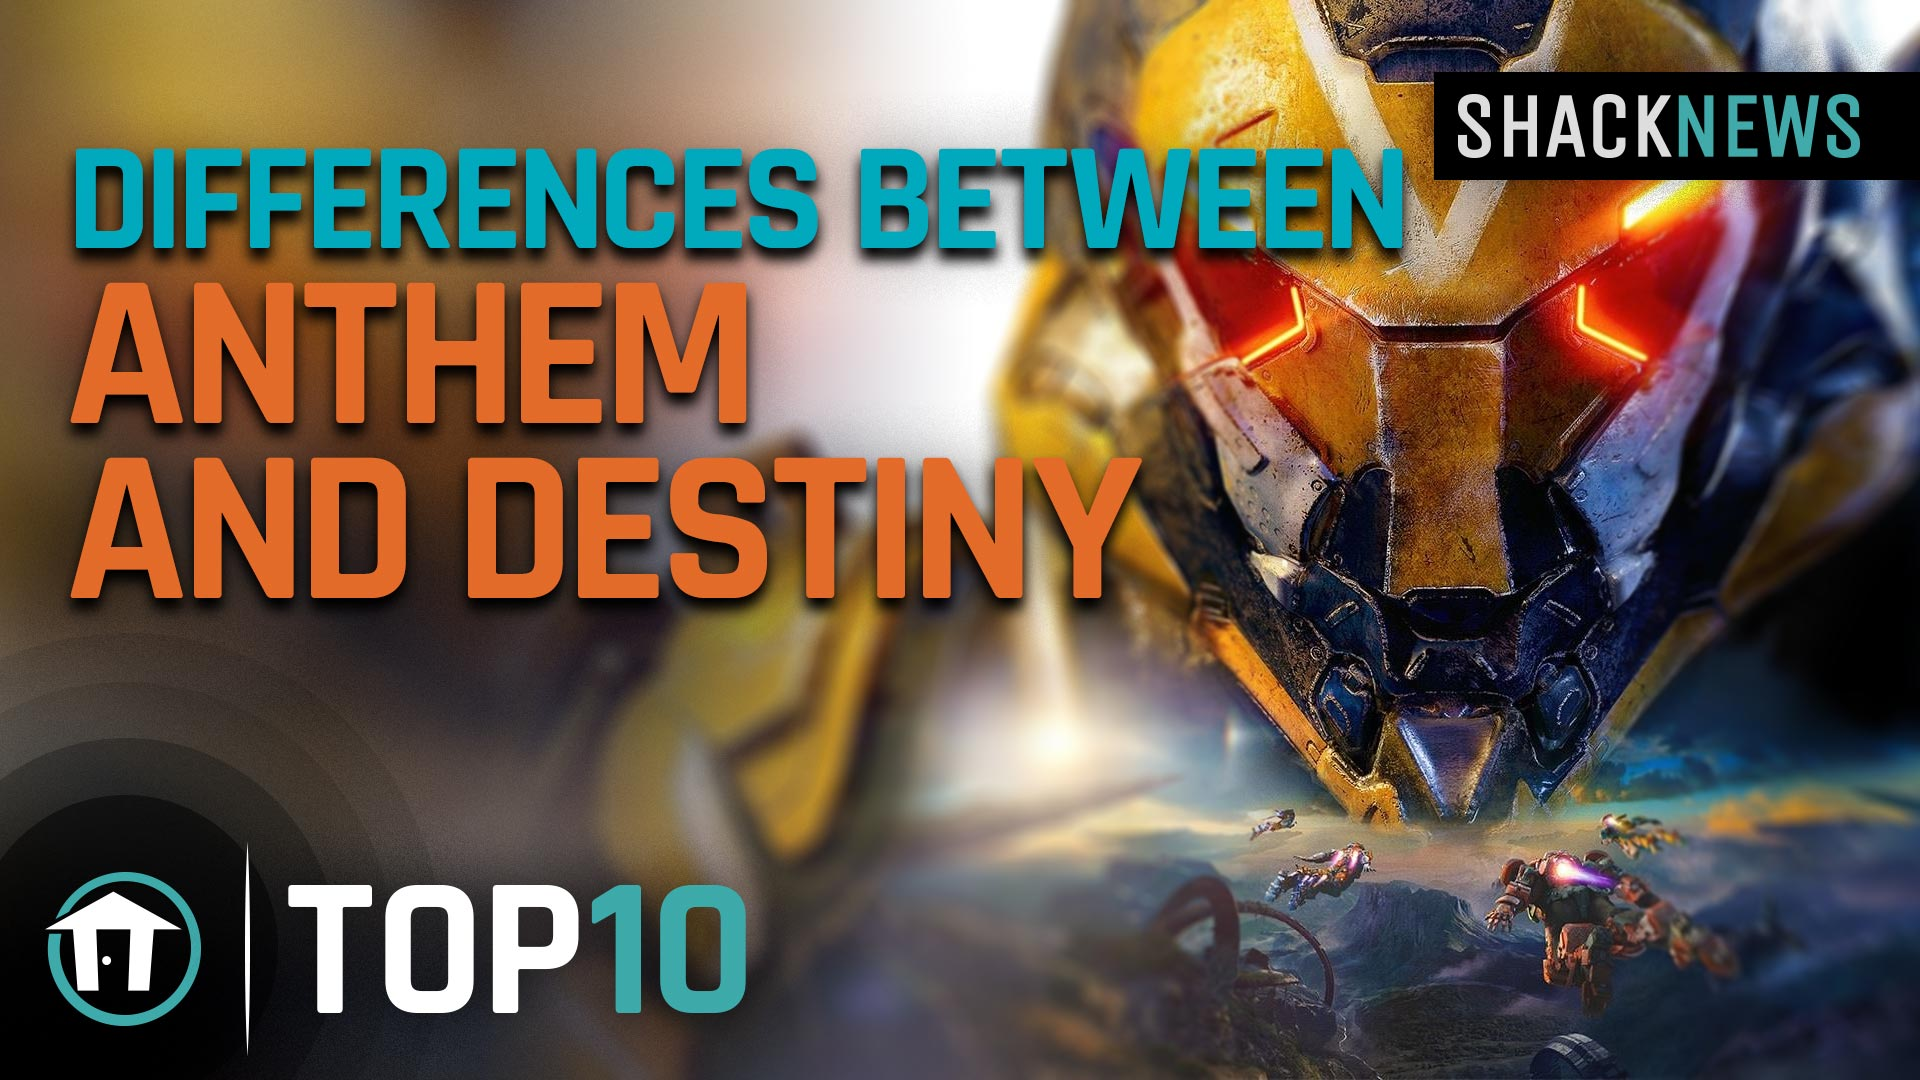 Top 10 differences between Anthem and Destiny